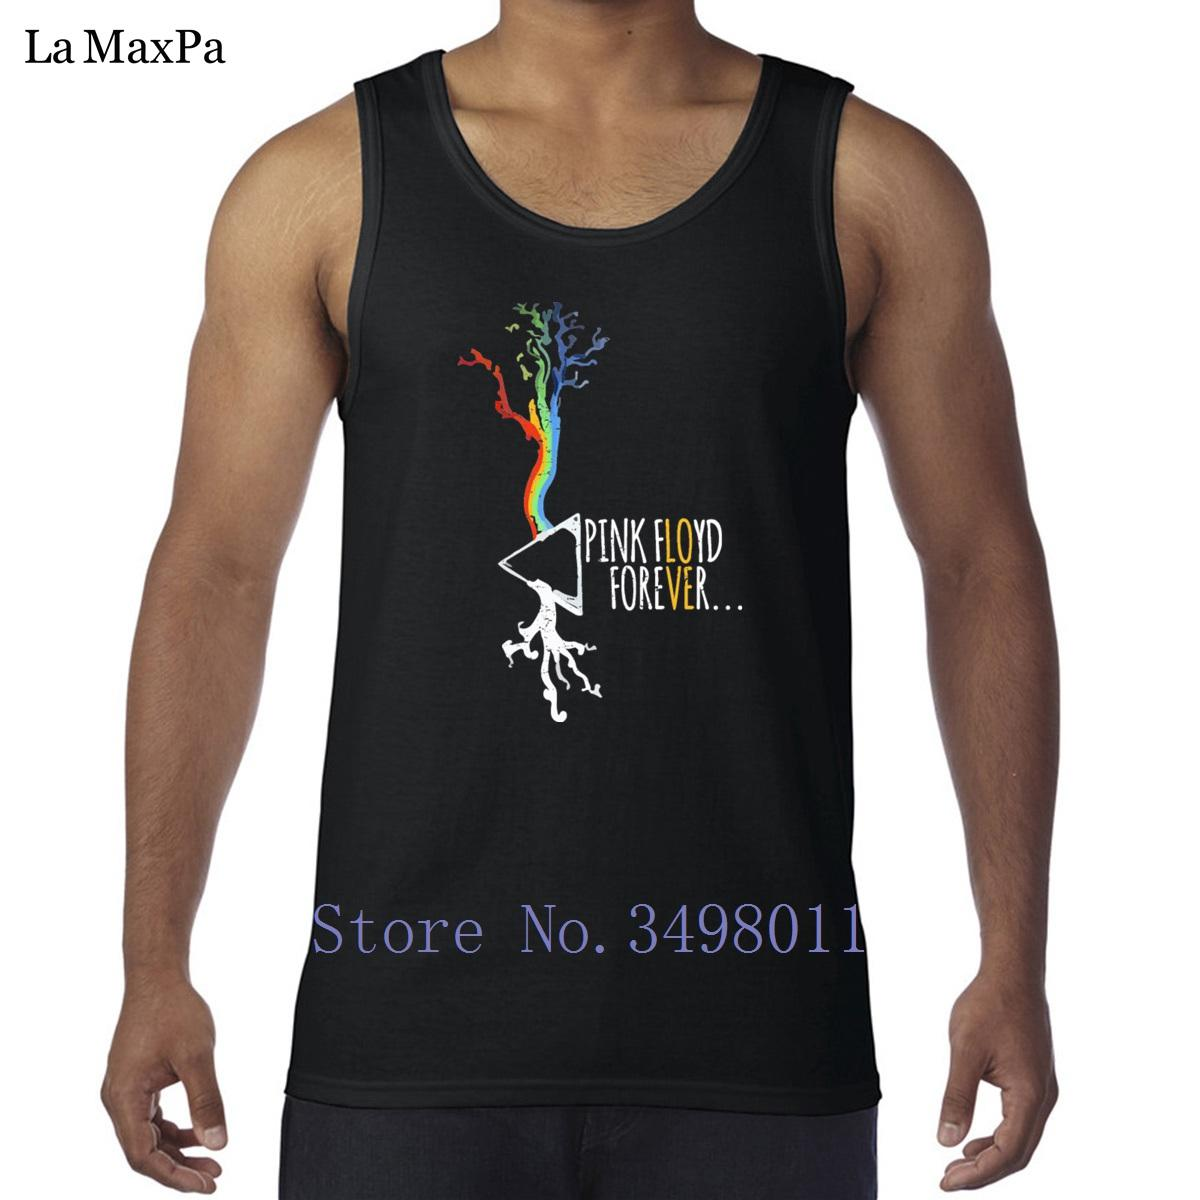 6e3d81b4d85f30 2019 Creature Trend Pink Floyd Dark Side Of The Moon Tank Top For Men  Singlets Newest Man Vest Sleeveless Websites Muscle Round Neck From Burtom